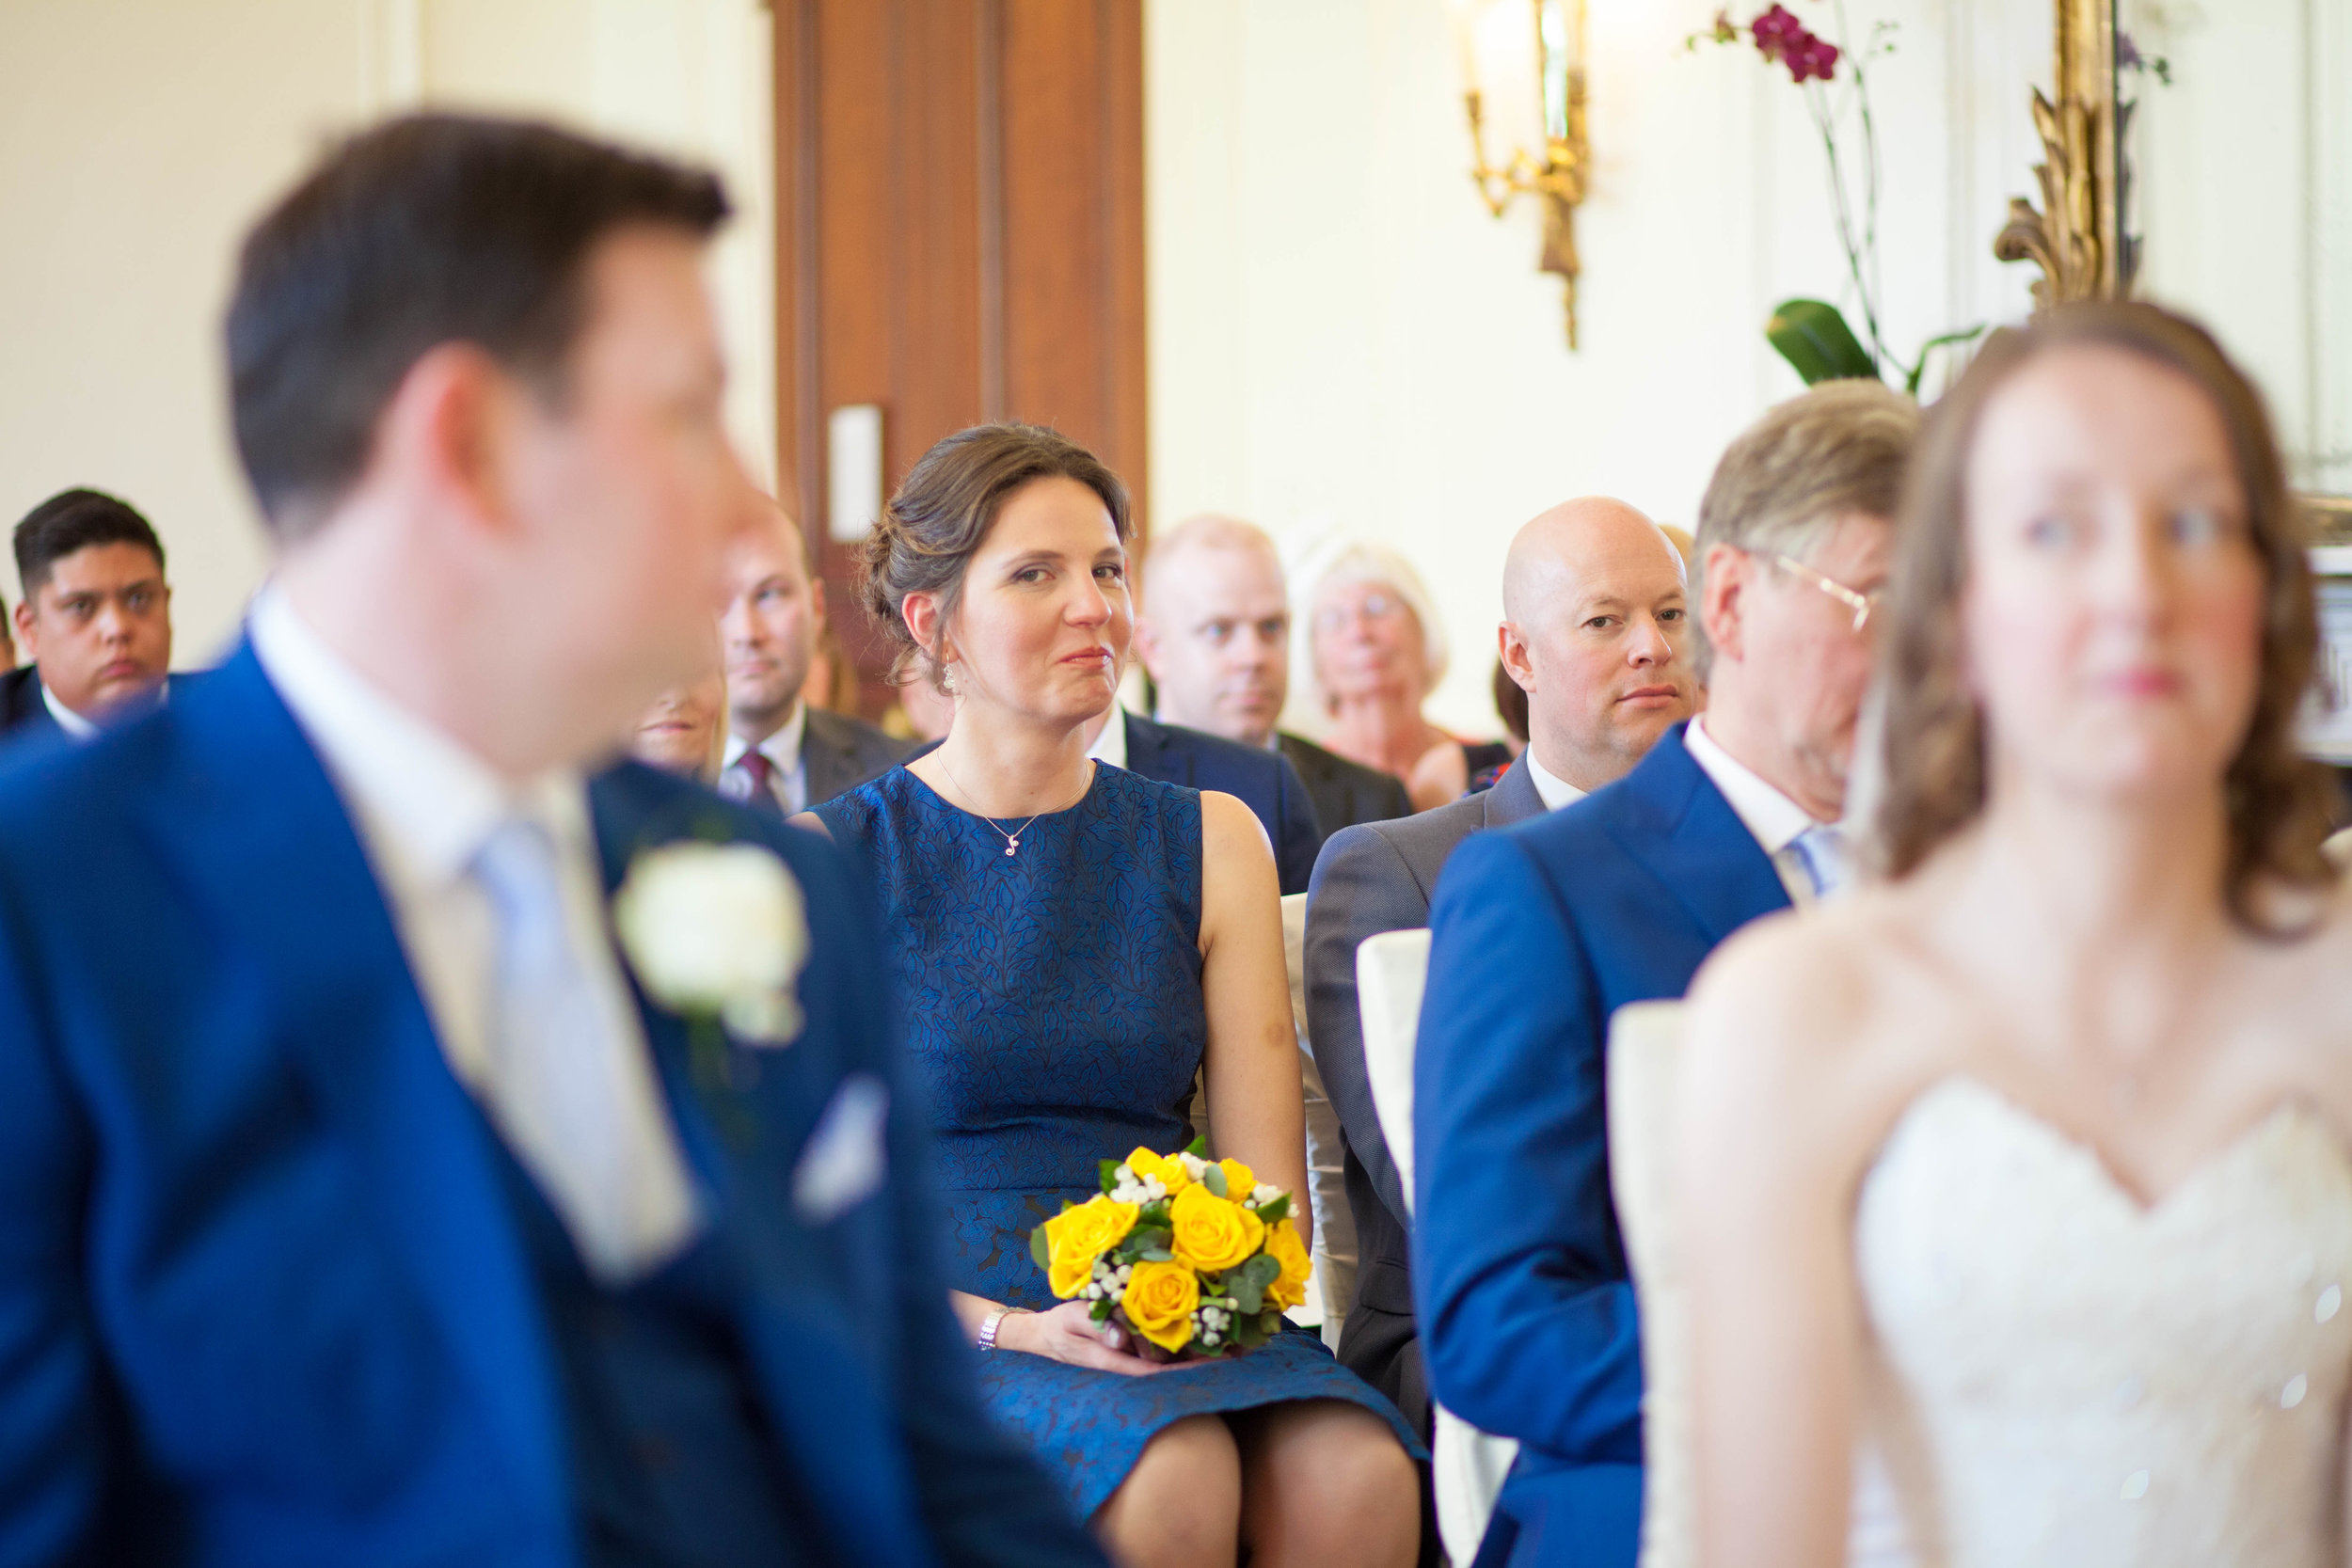 NLPhotography_Taplow_House-Wedding_Photographer_Emily&Alan_C-253.jpg